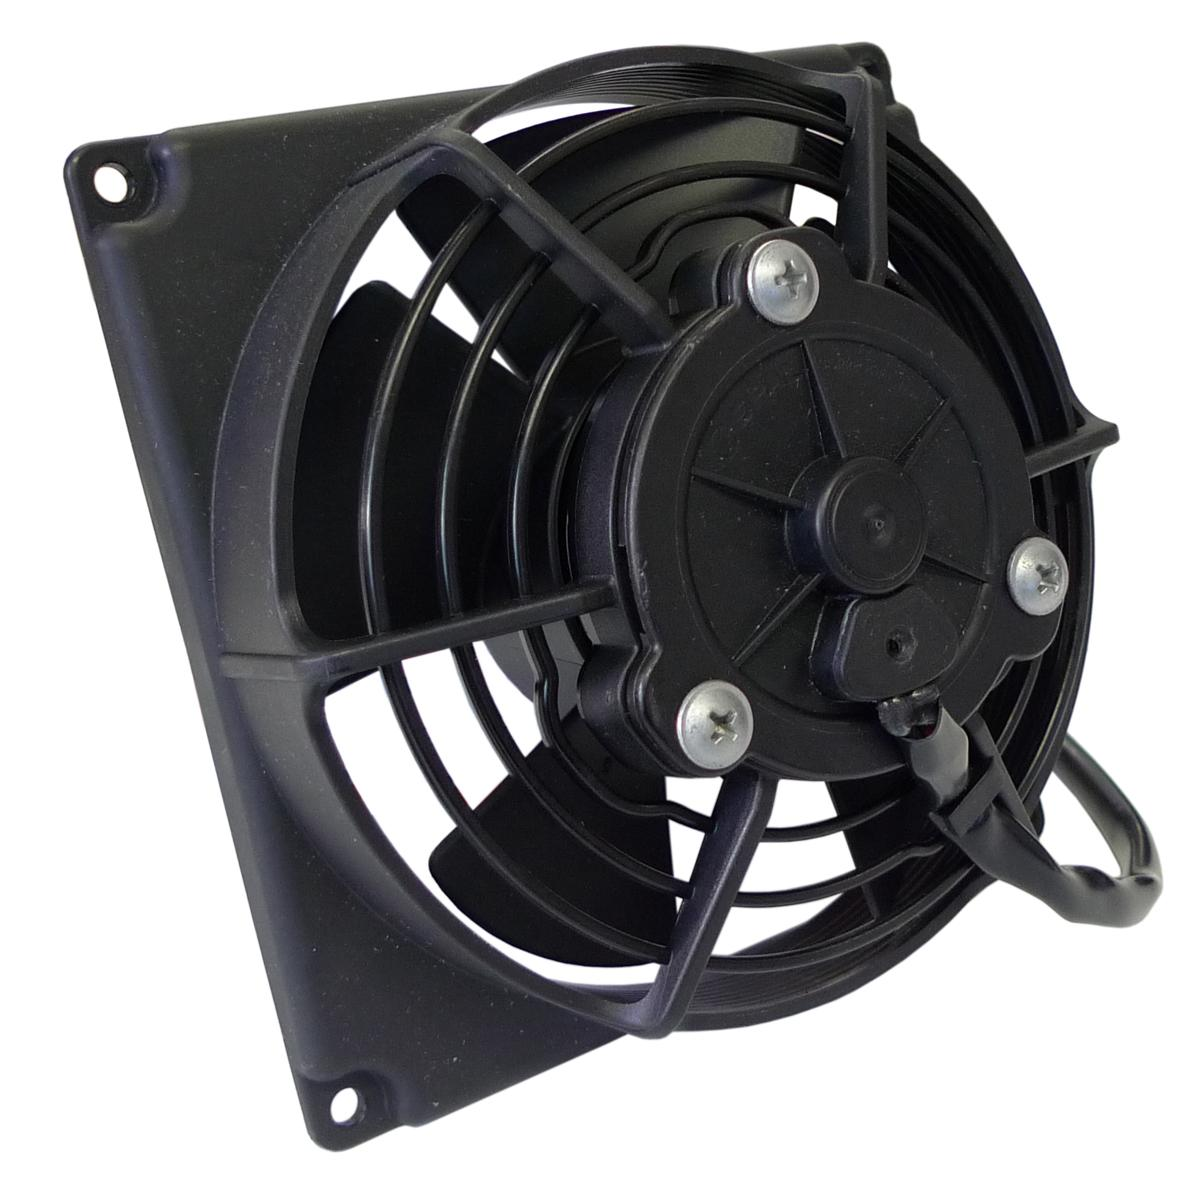 Radiator Cooling Fans : Spal radiator fan inch diameter blow